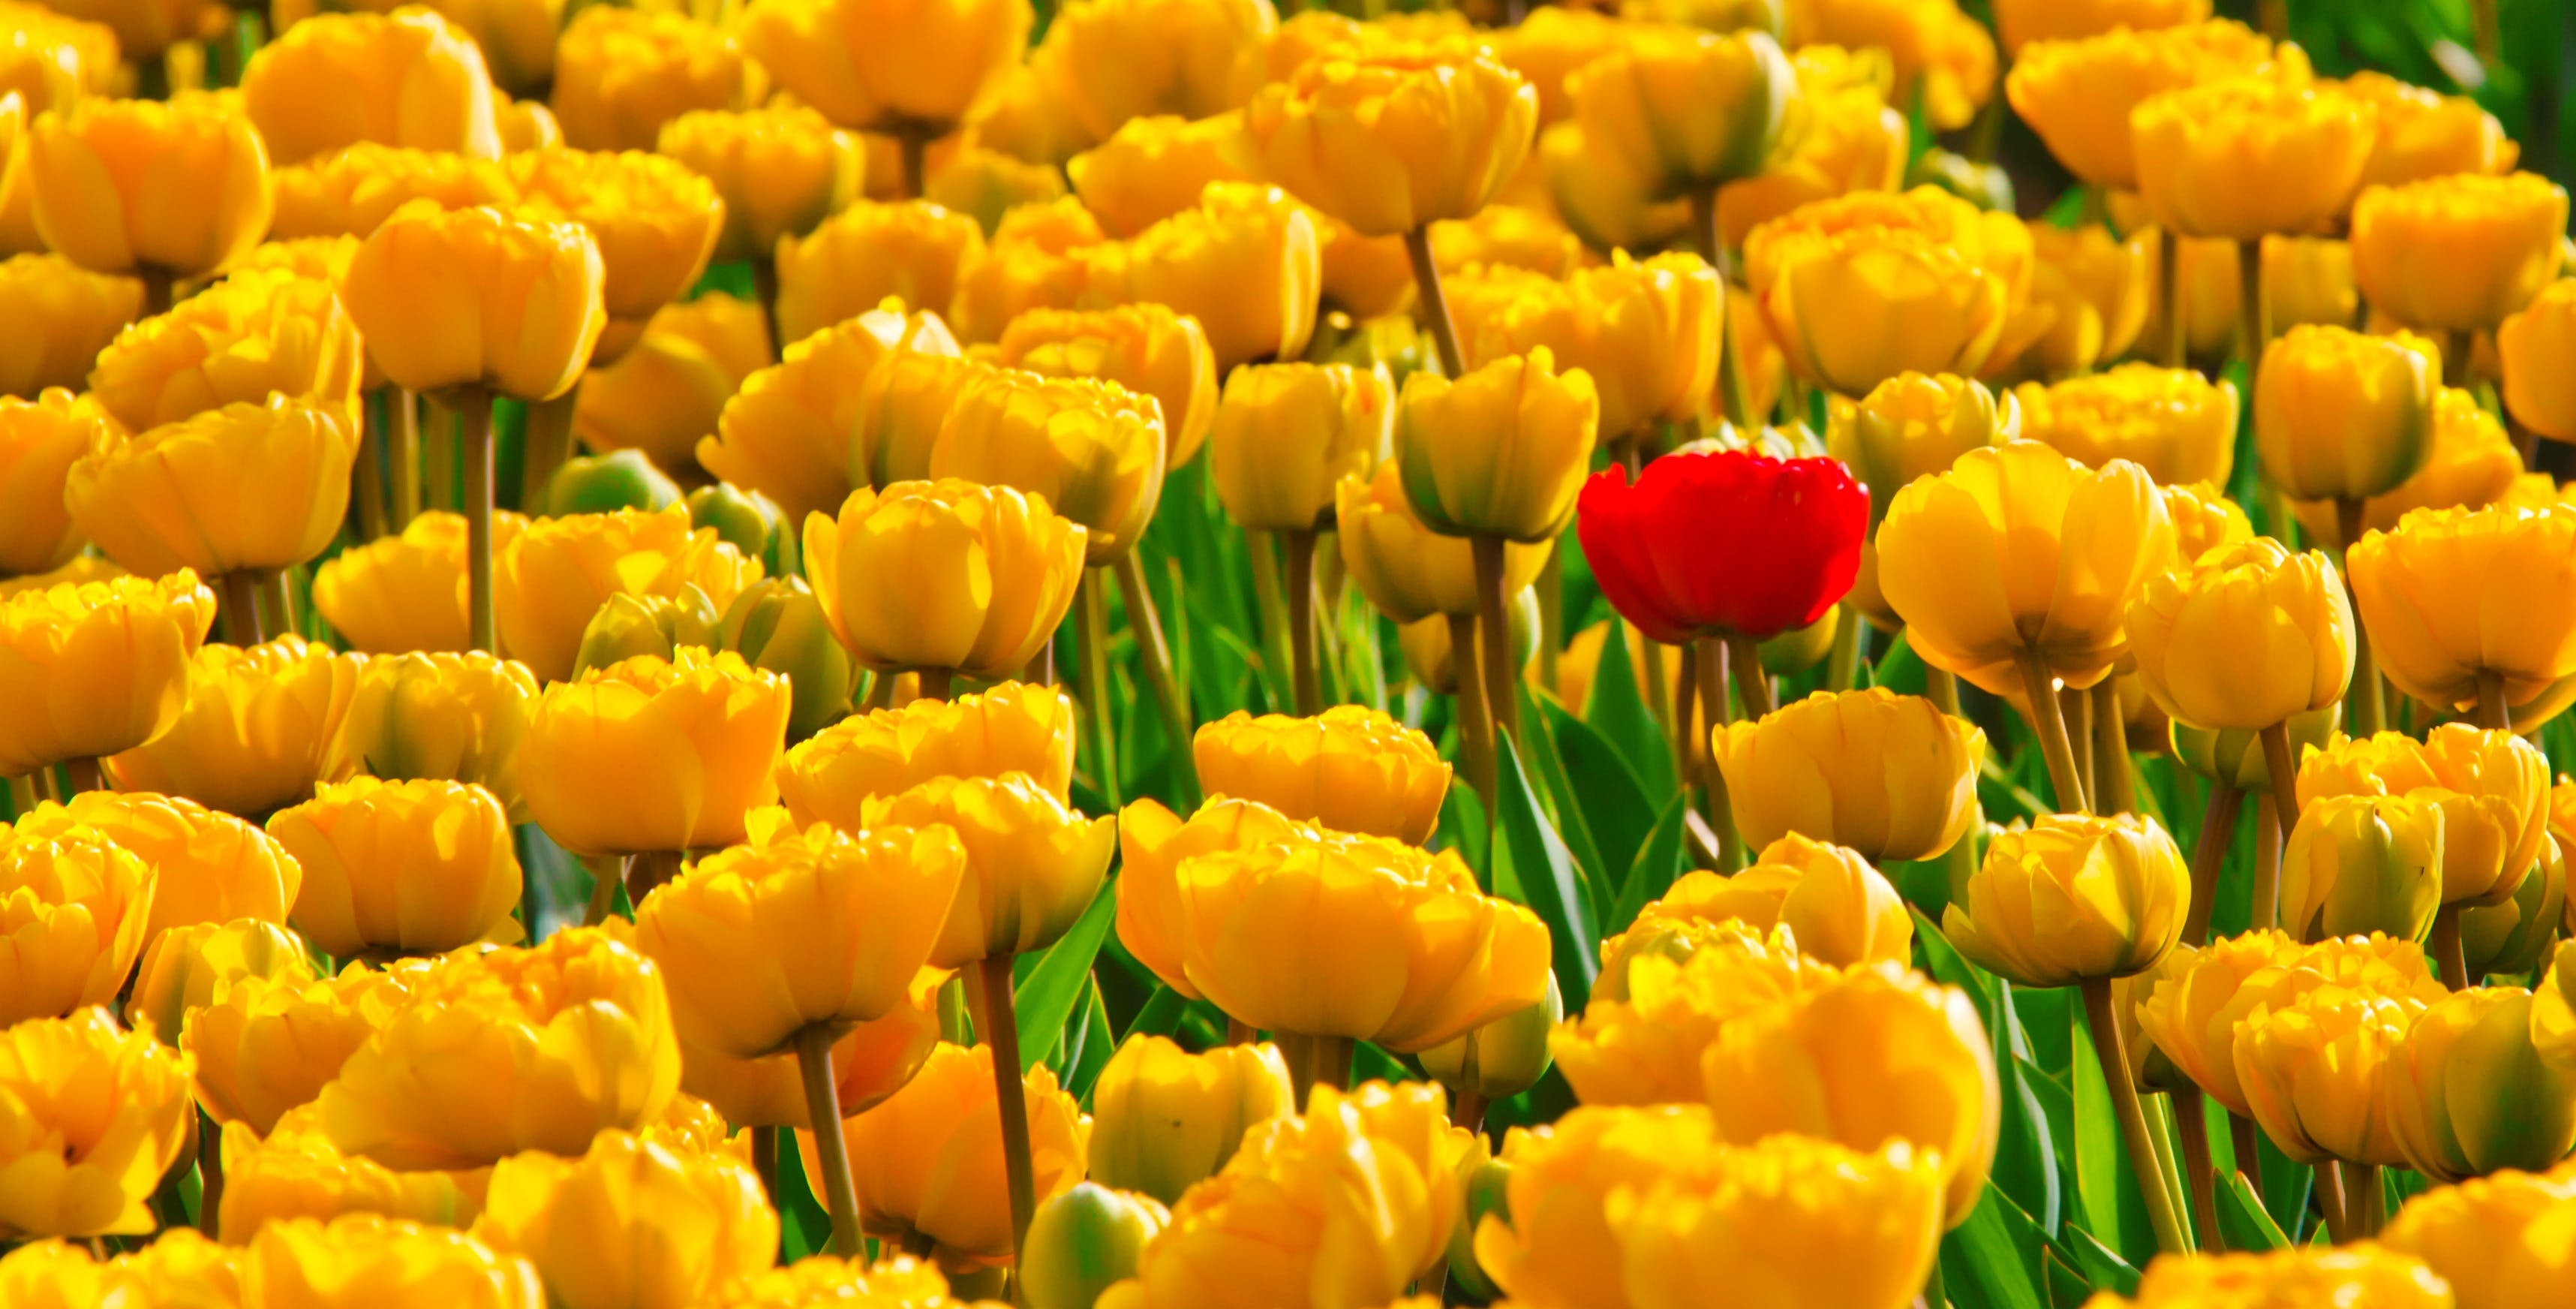 Yellow Petaled Flowers With One Red Petaled Flower Mixed in